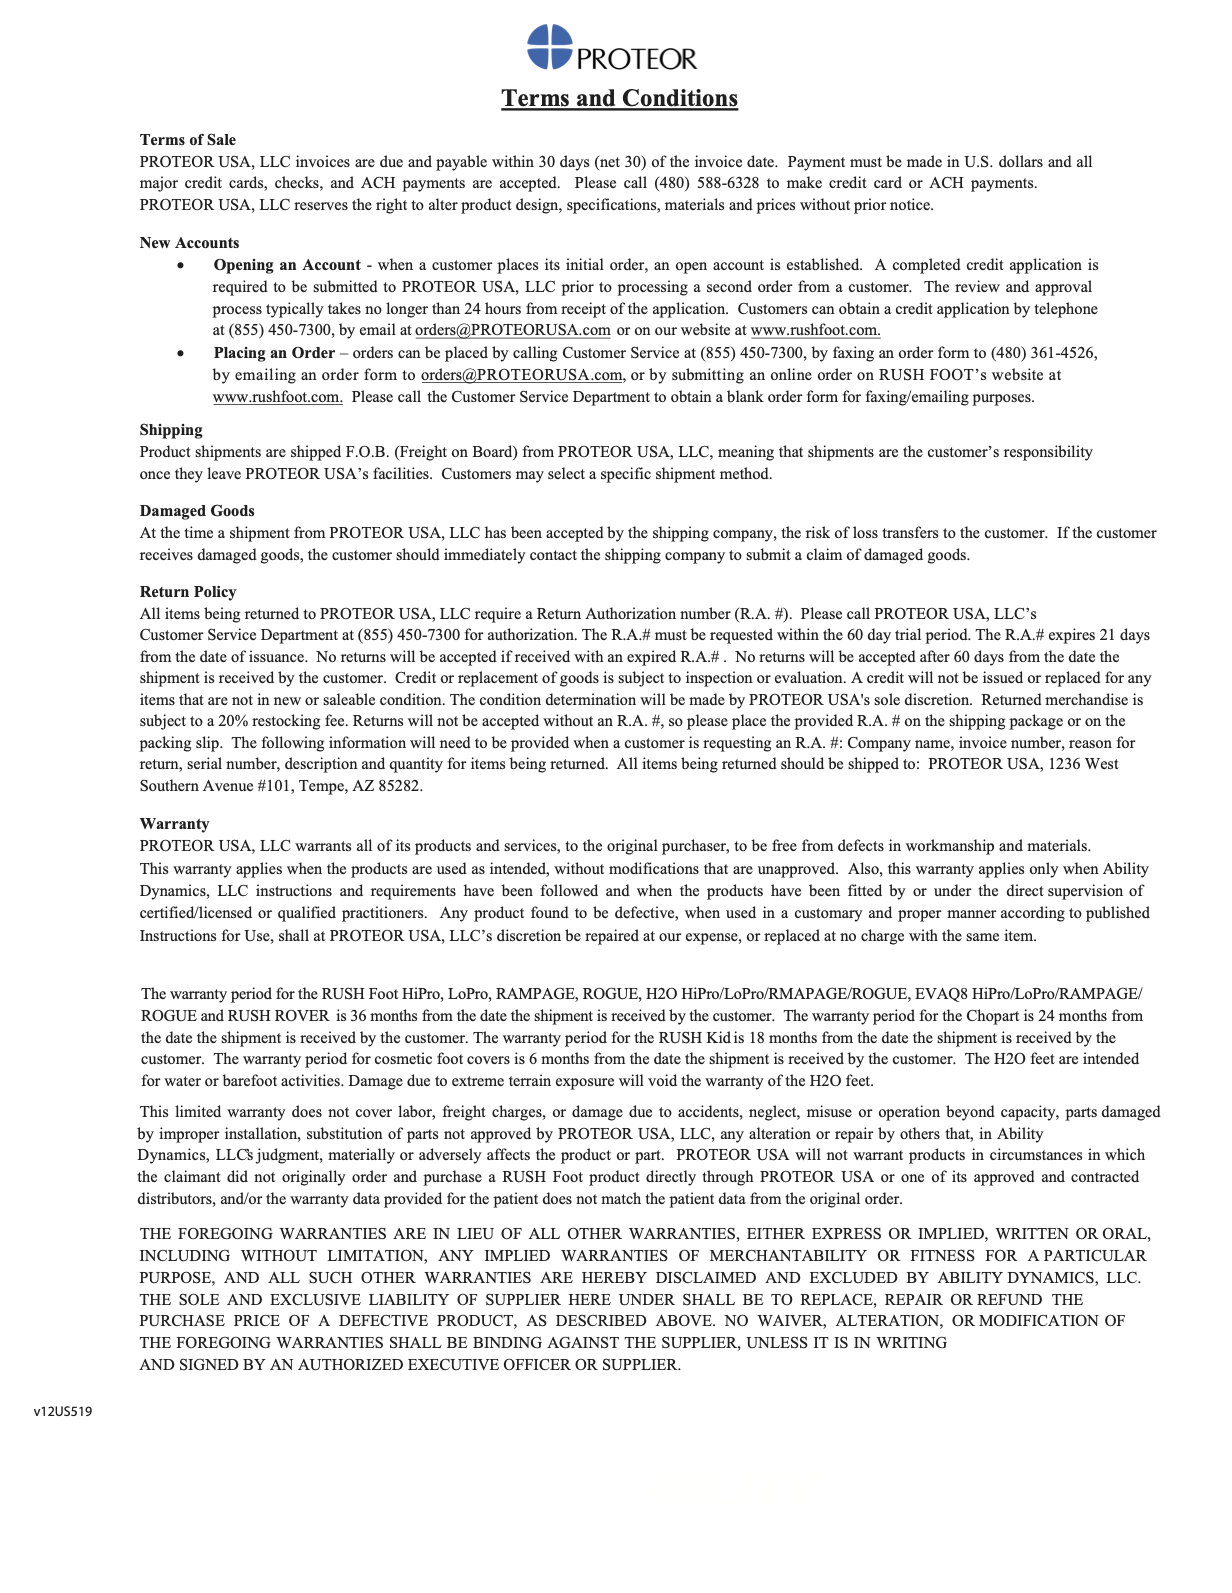 PROTEORUSA terms and conditions